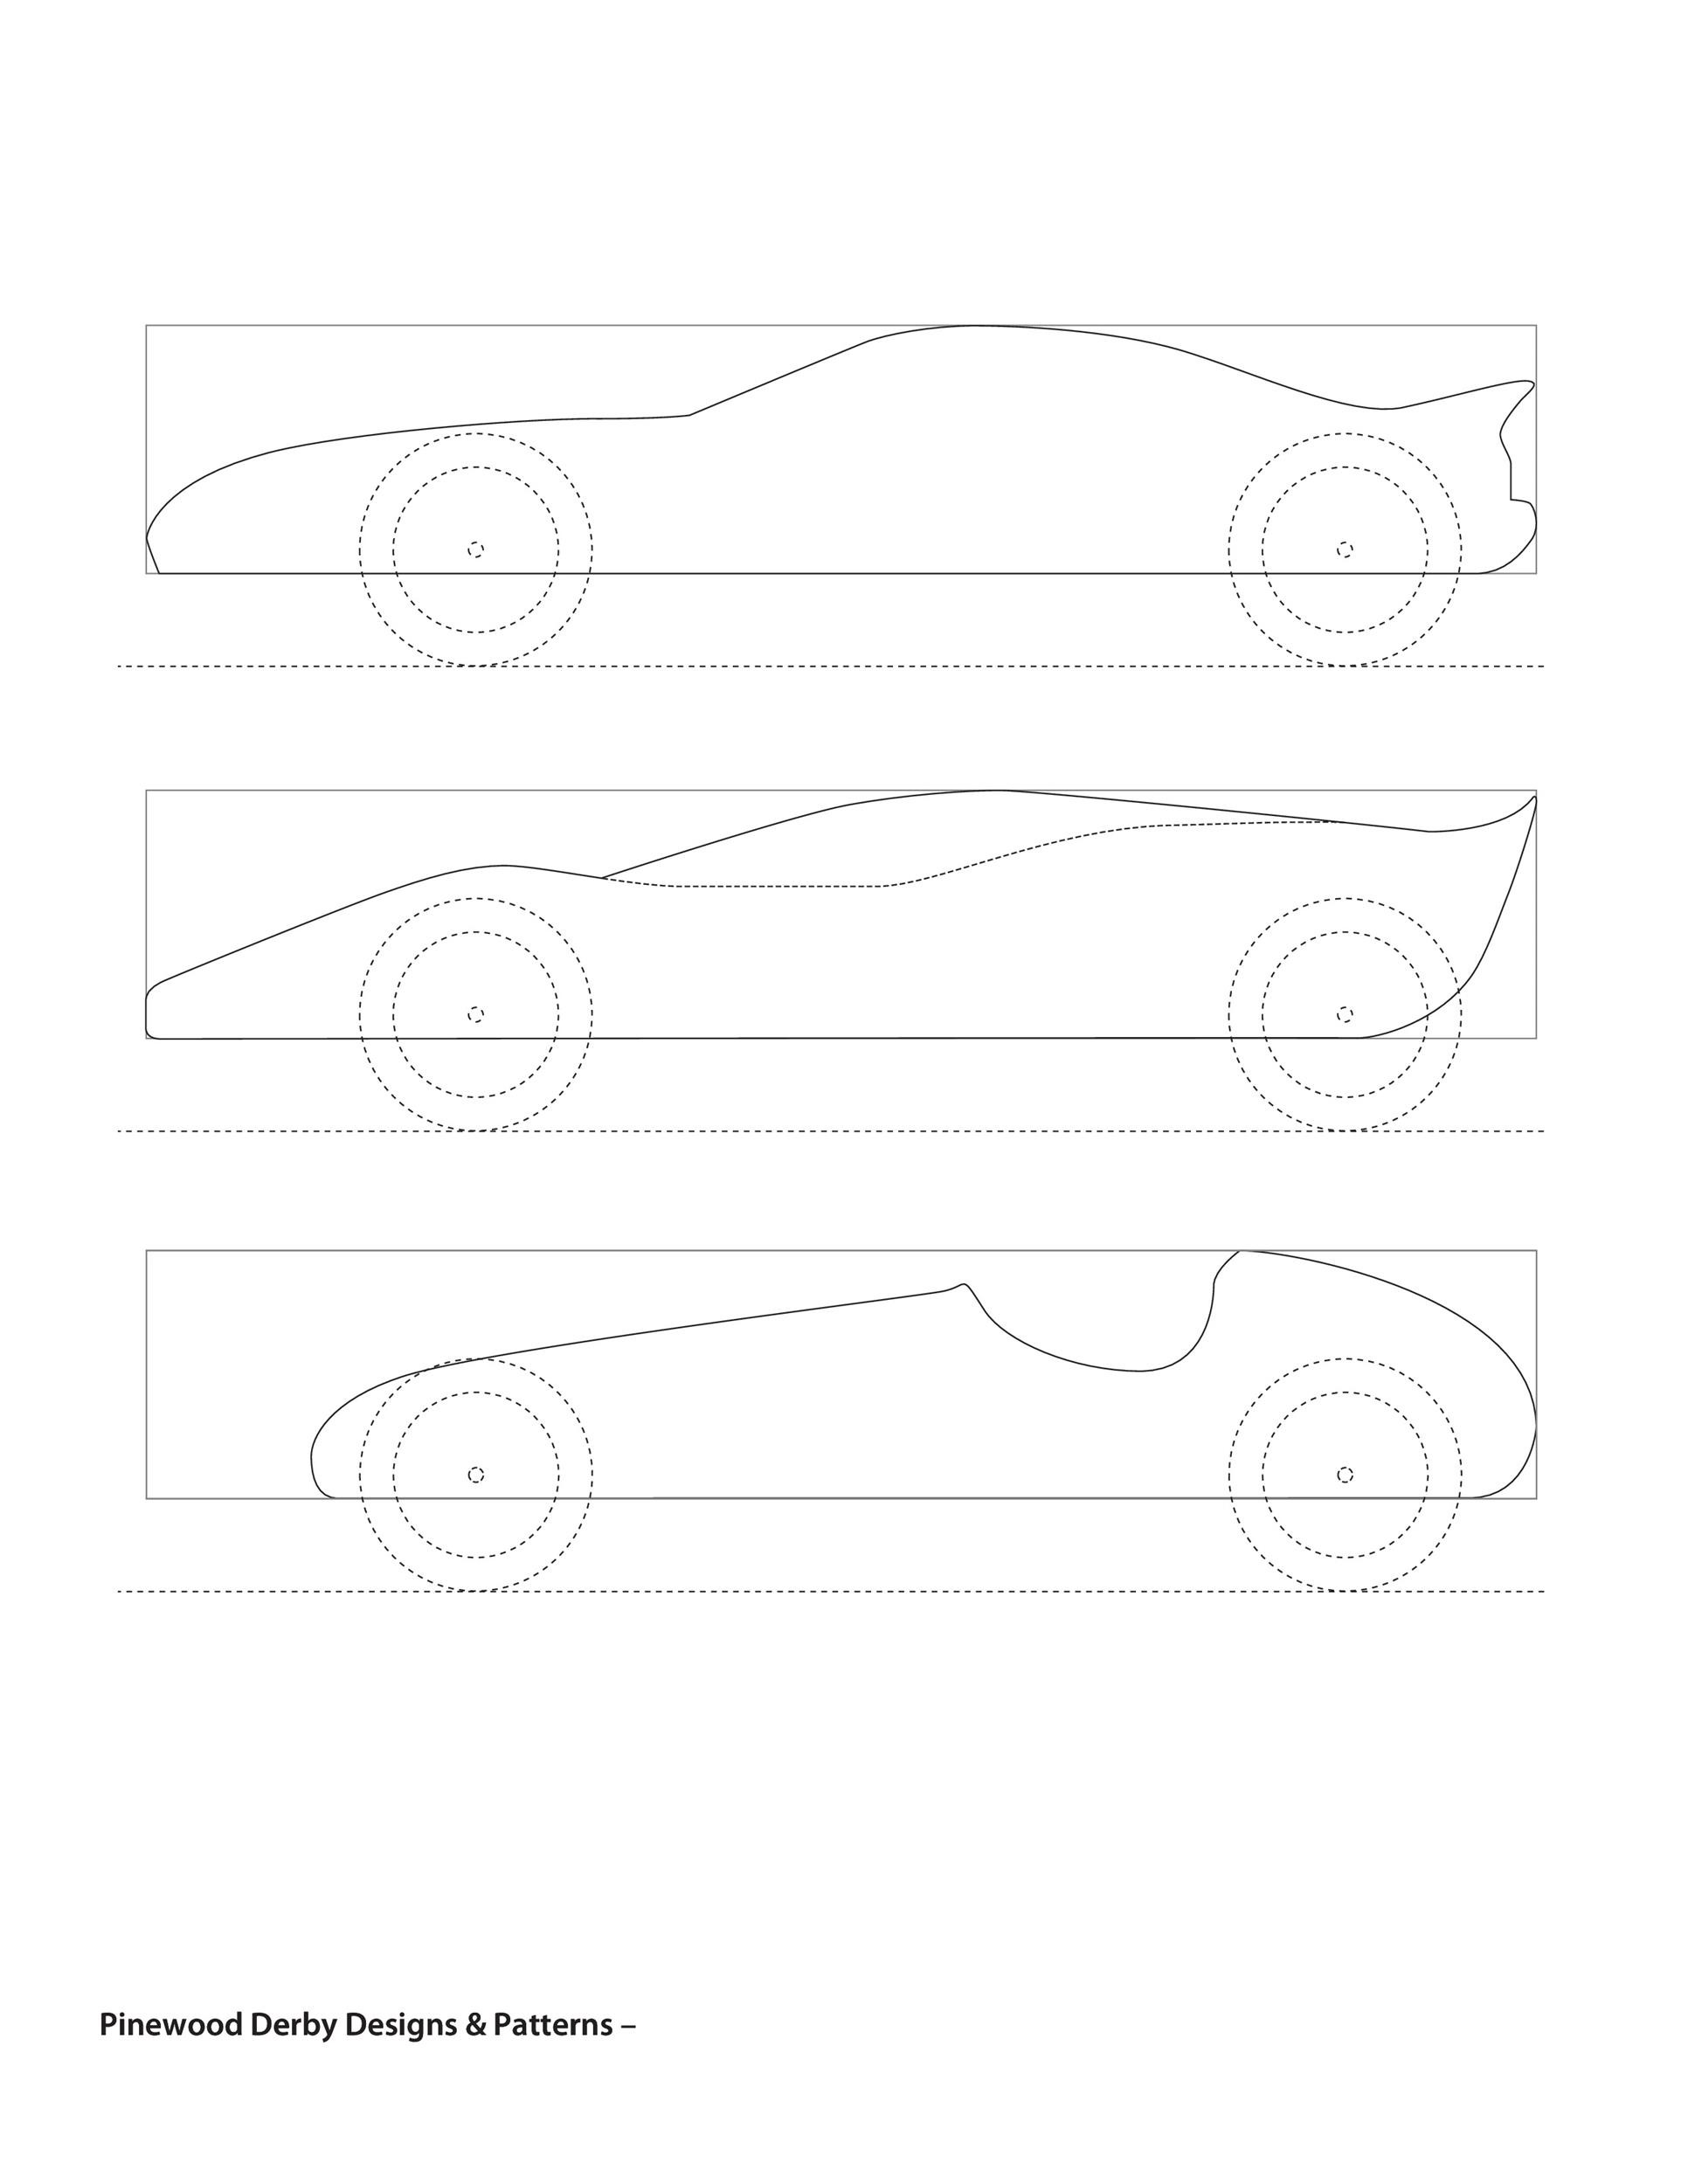 pine wood derby template - 39 awesome pinewood derby car designs templates